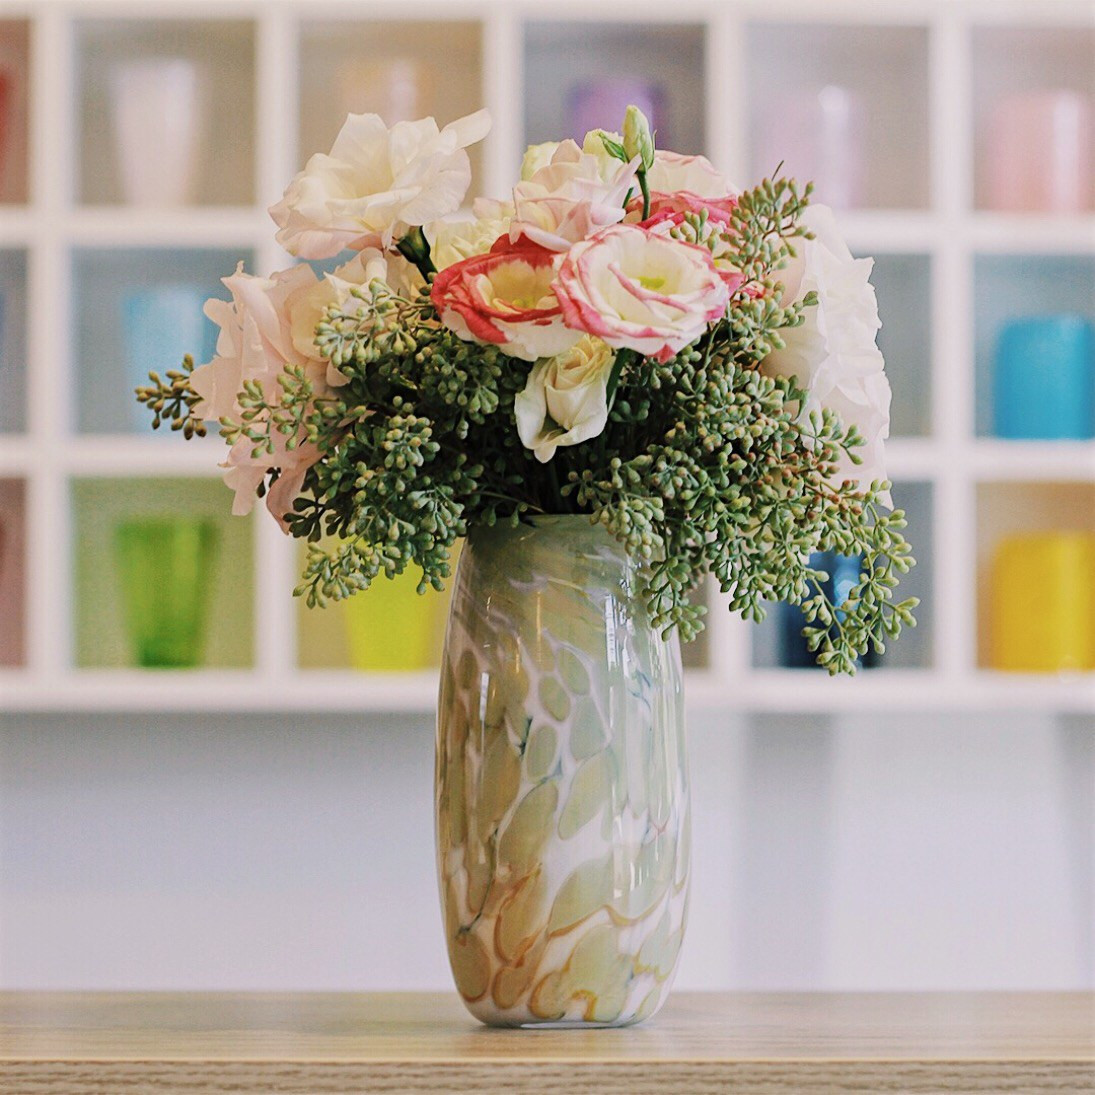 25 Fashionable How to Repair Broken Glass Vase